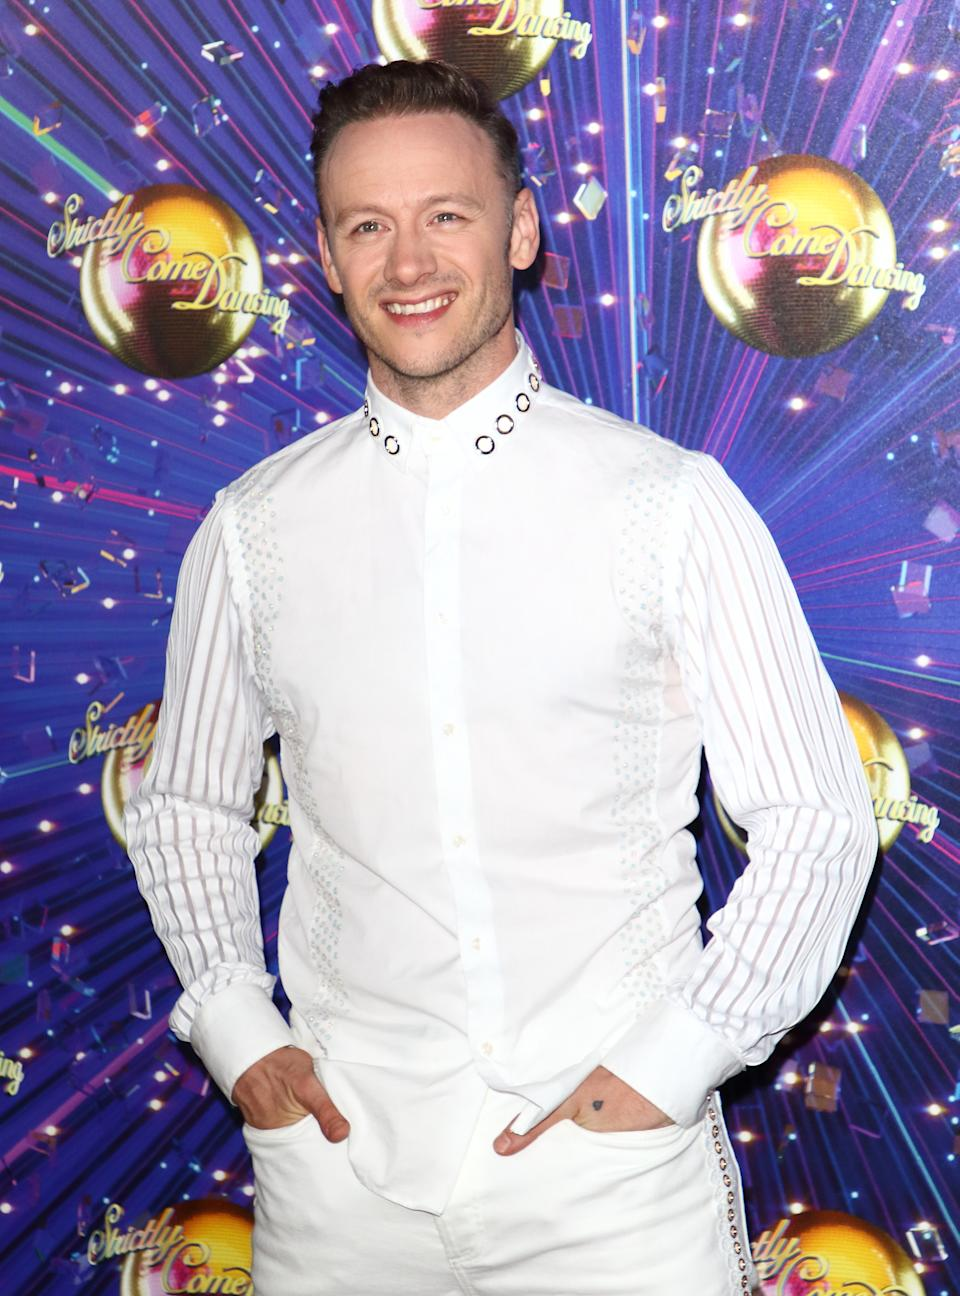 Kevin Clifton won't be returning for the 2020 series. (Photo by Keith Mayhew/SOPA Images/LightRocket via Getty Images)